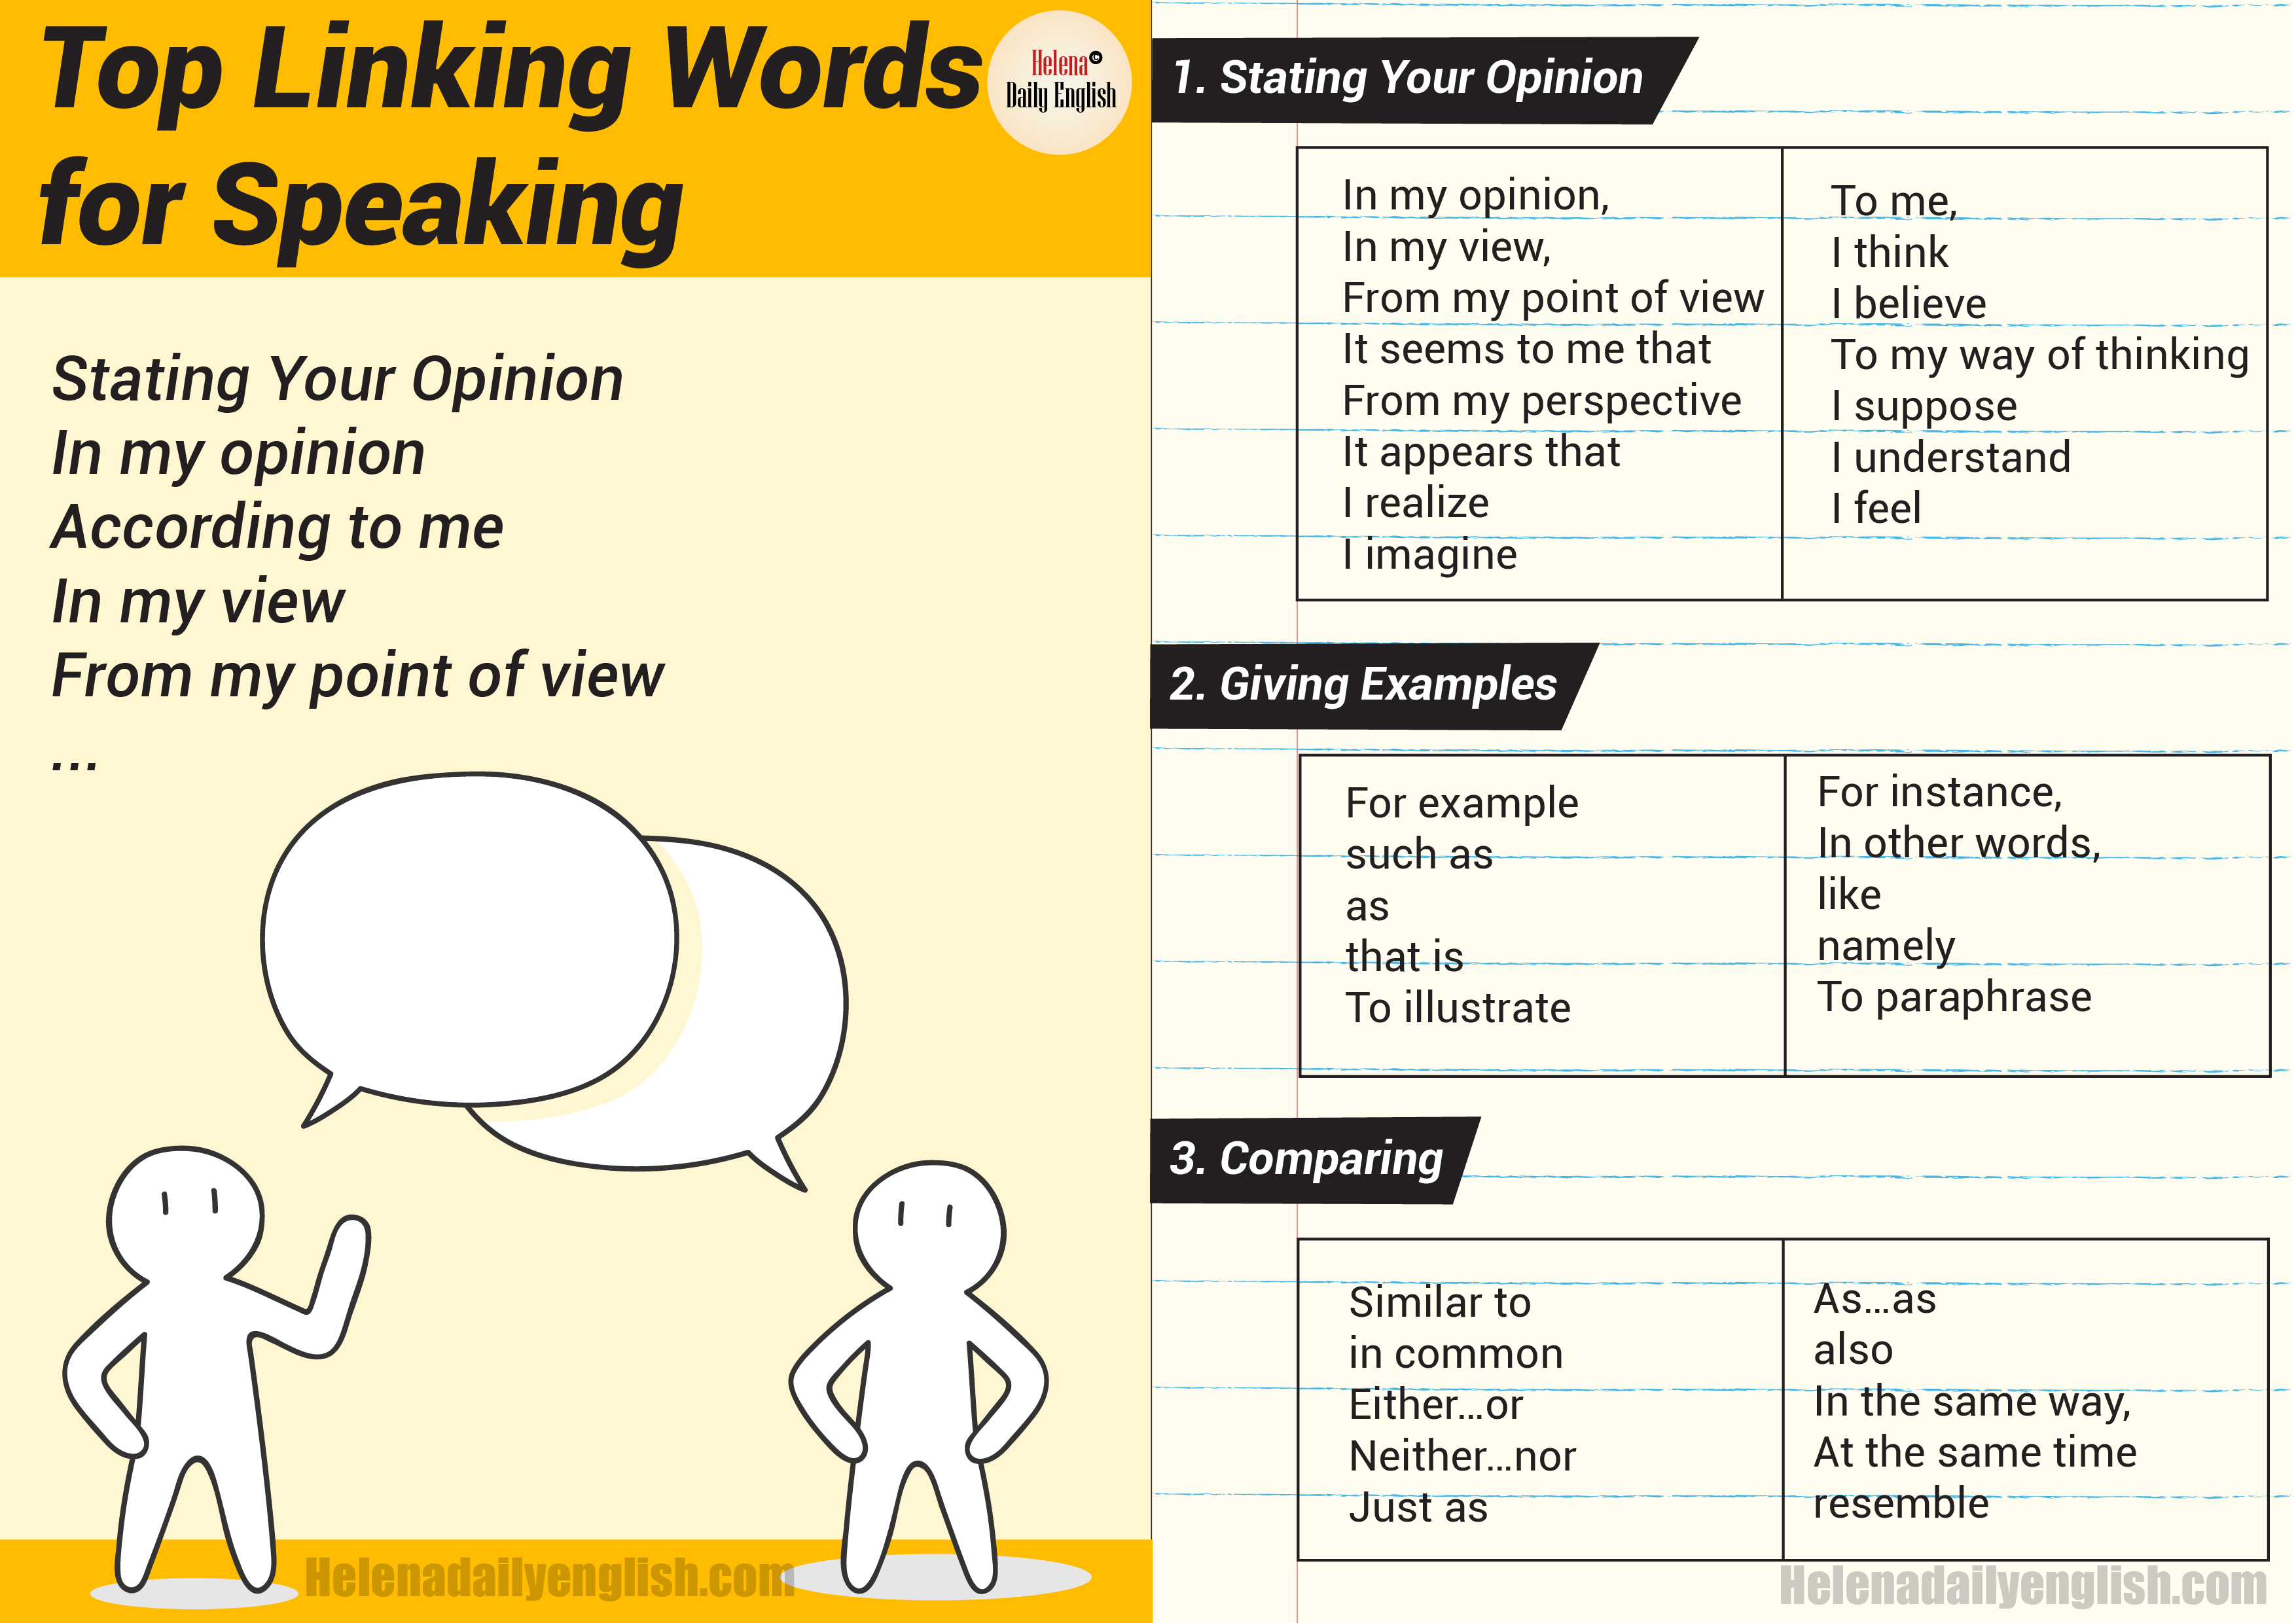 top linking words for speaking and useful words phrases to write a  image